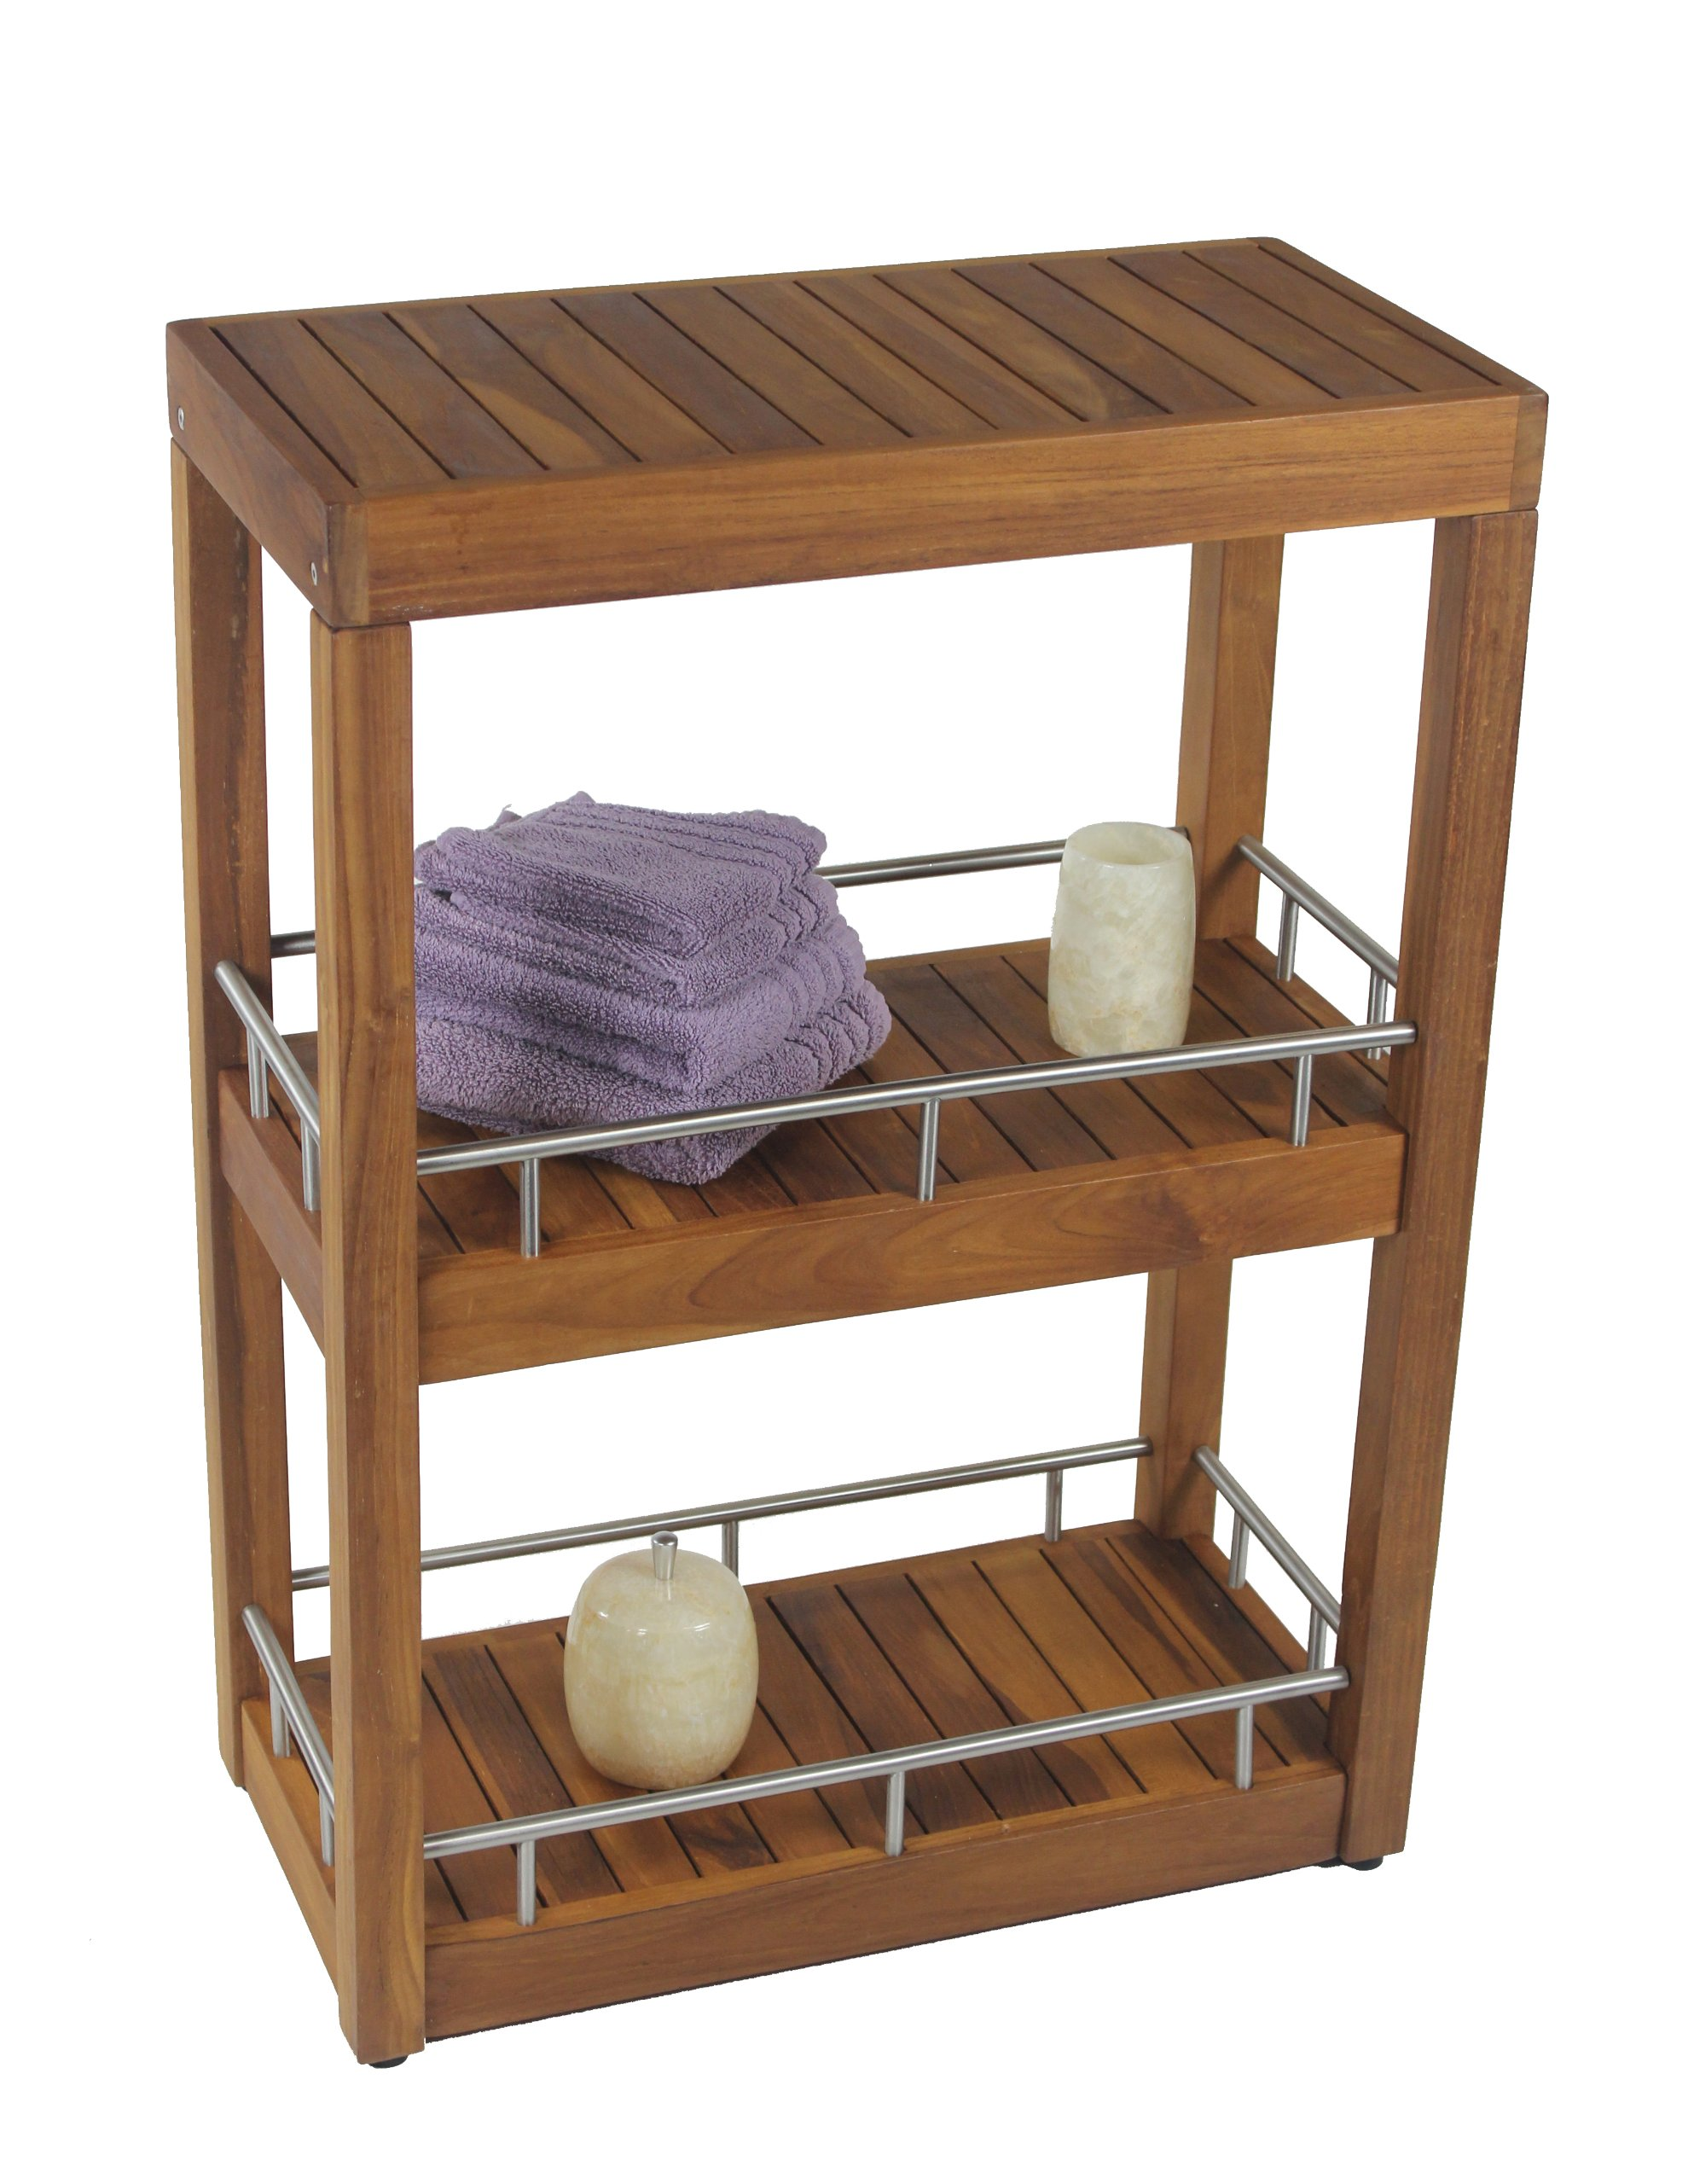 The Original Sula Rectangle Three Tier Teak & Stainless Bath Stand